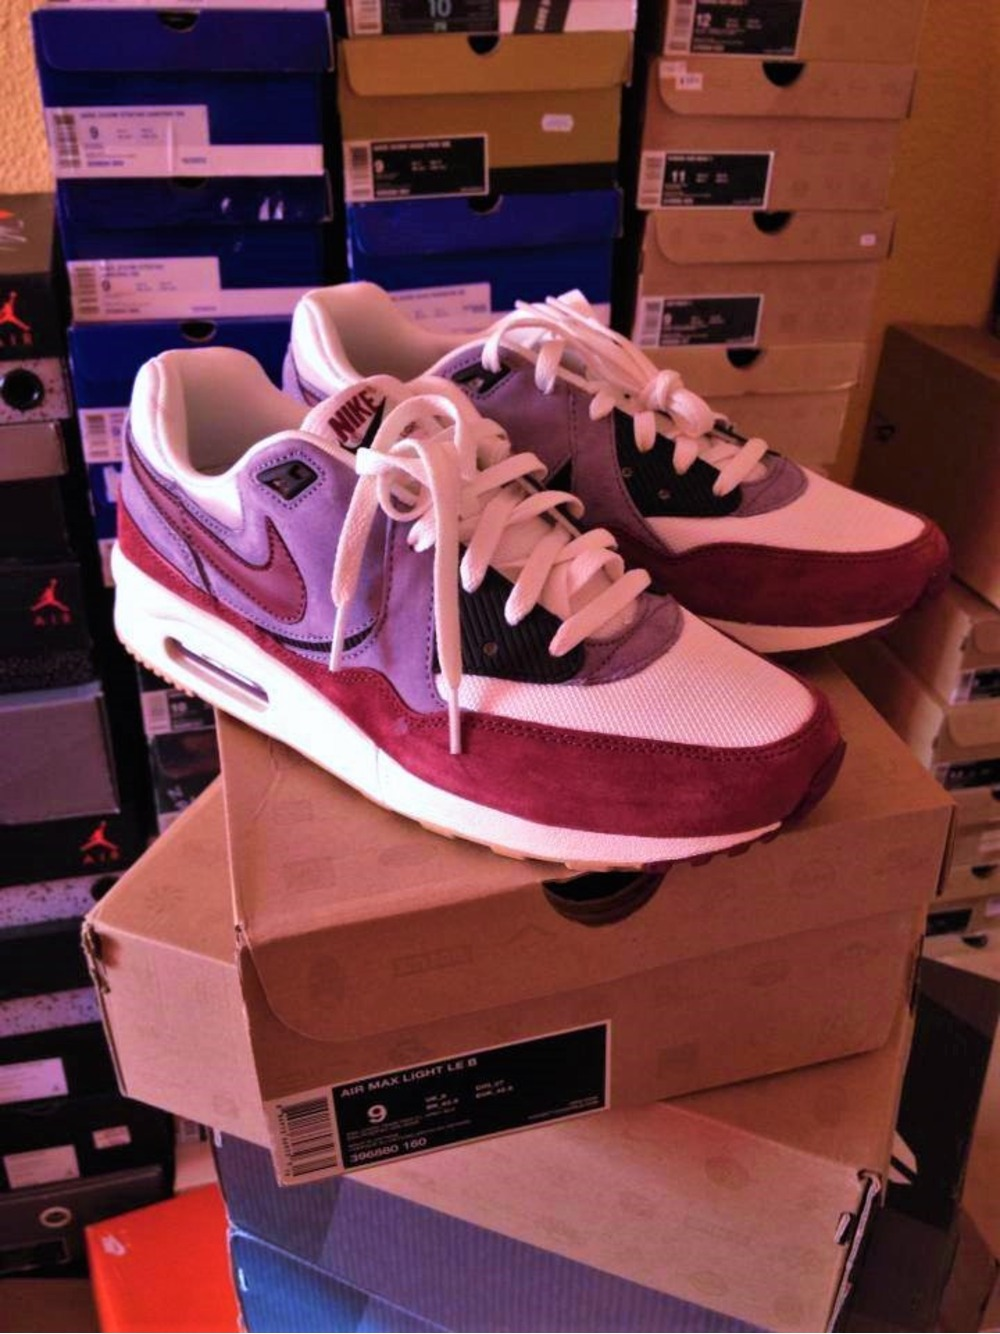 pretty nice f3f3b 0b160 ... Nike x Size AIR MAX LIGHT LE B US 9 EU 42.5 Suede amp ...